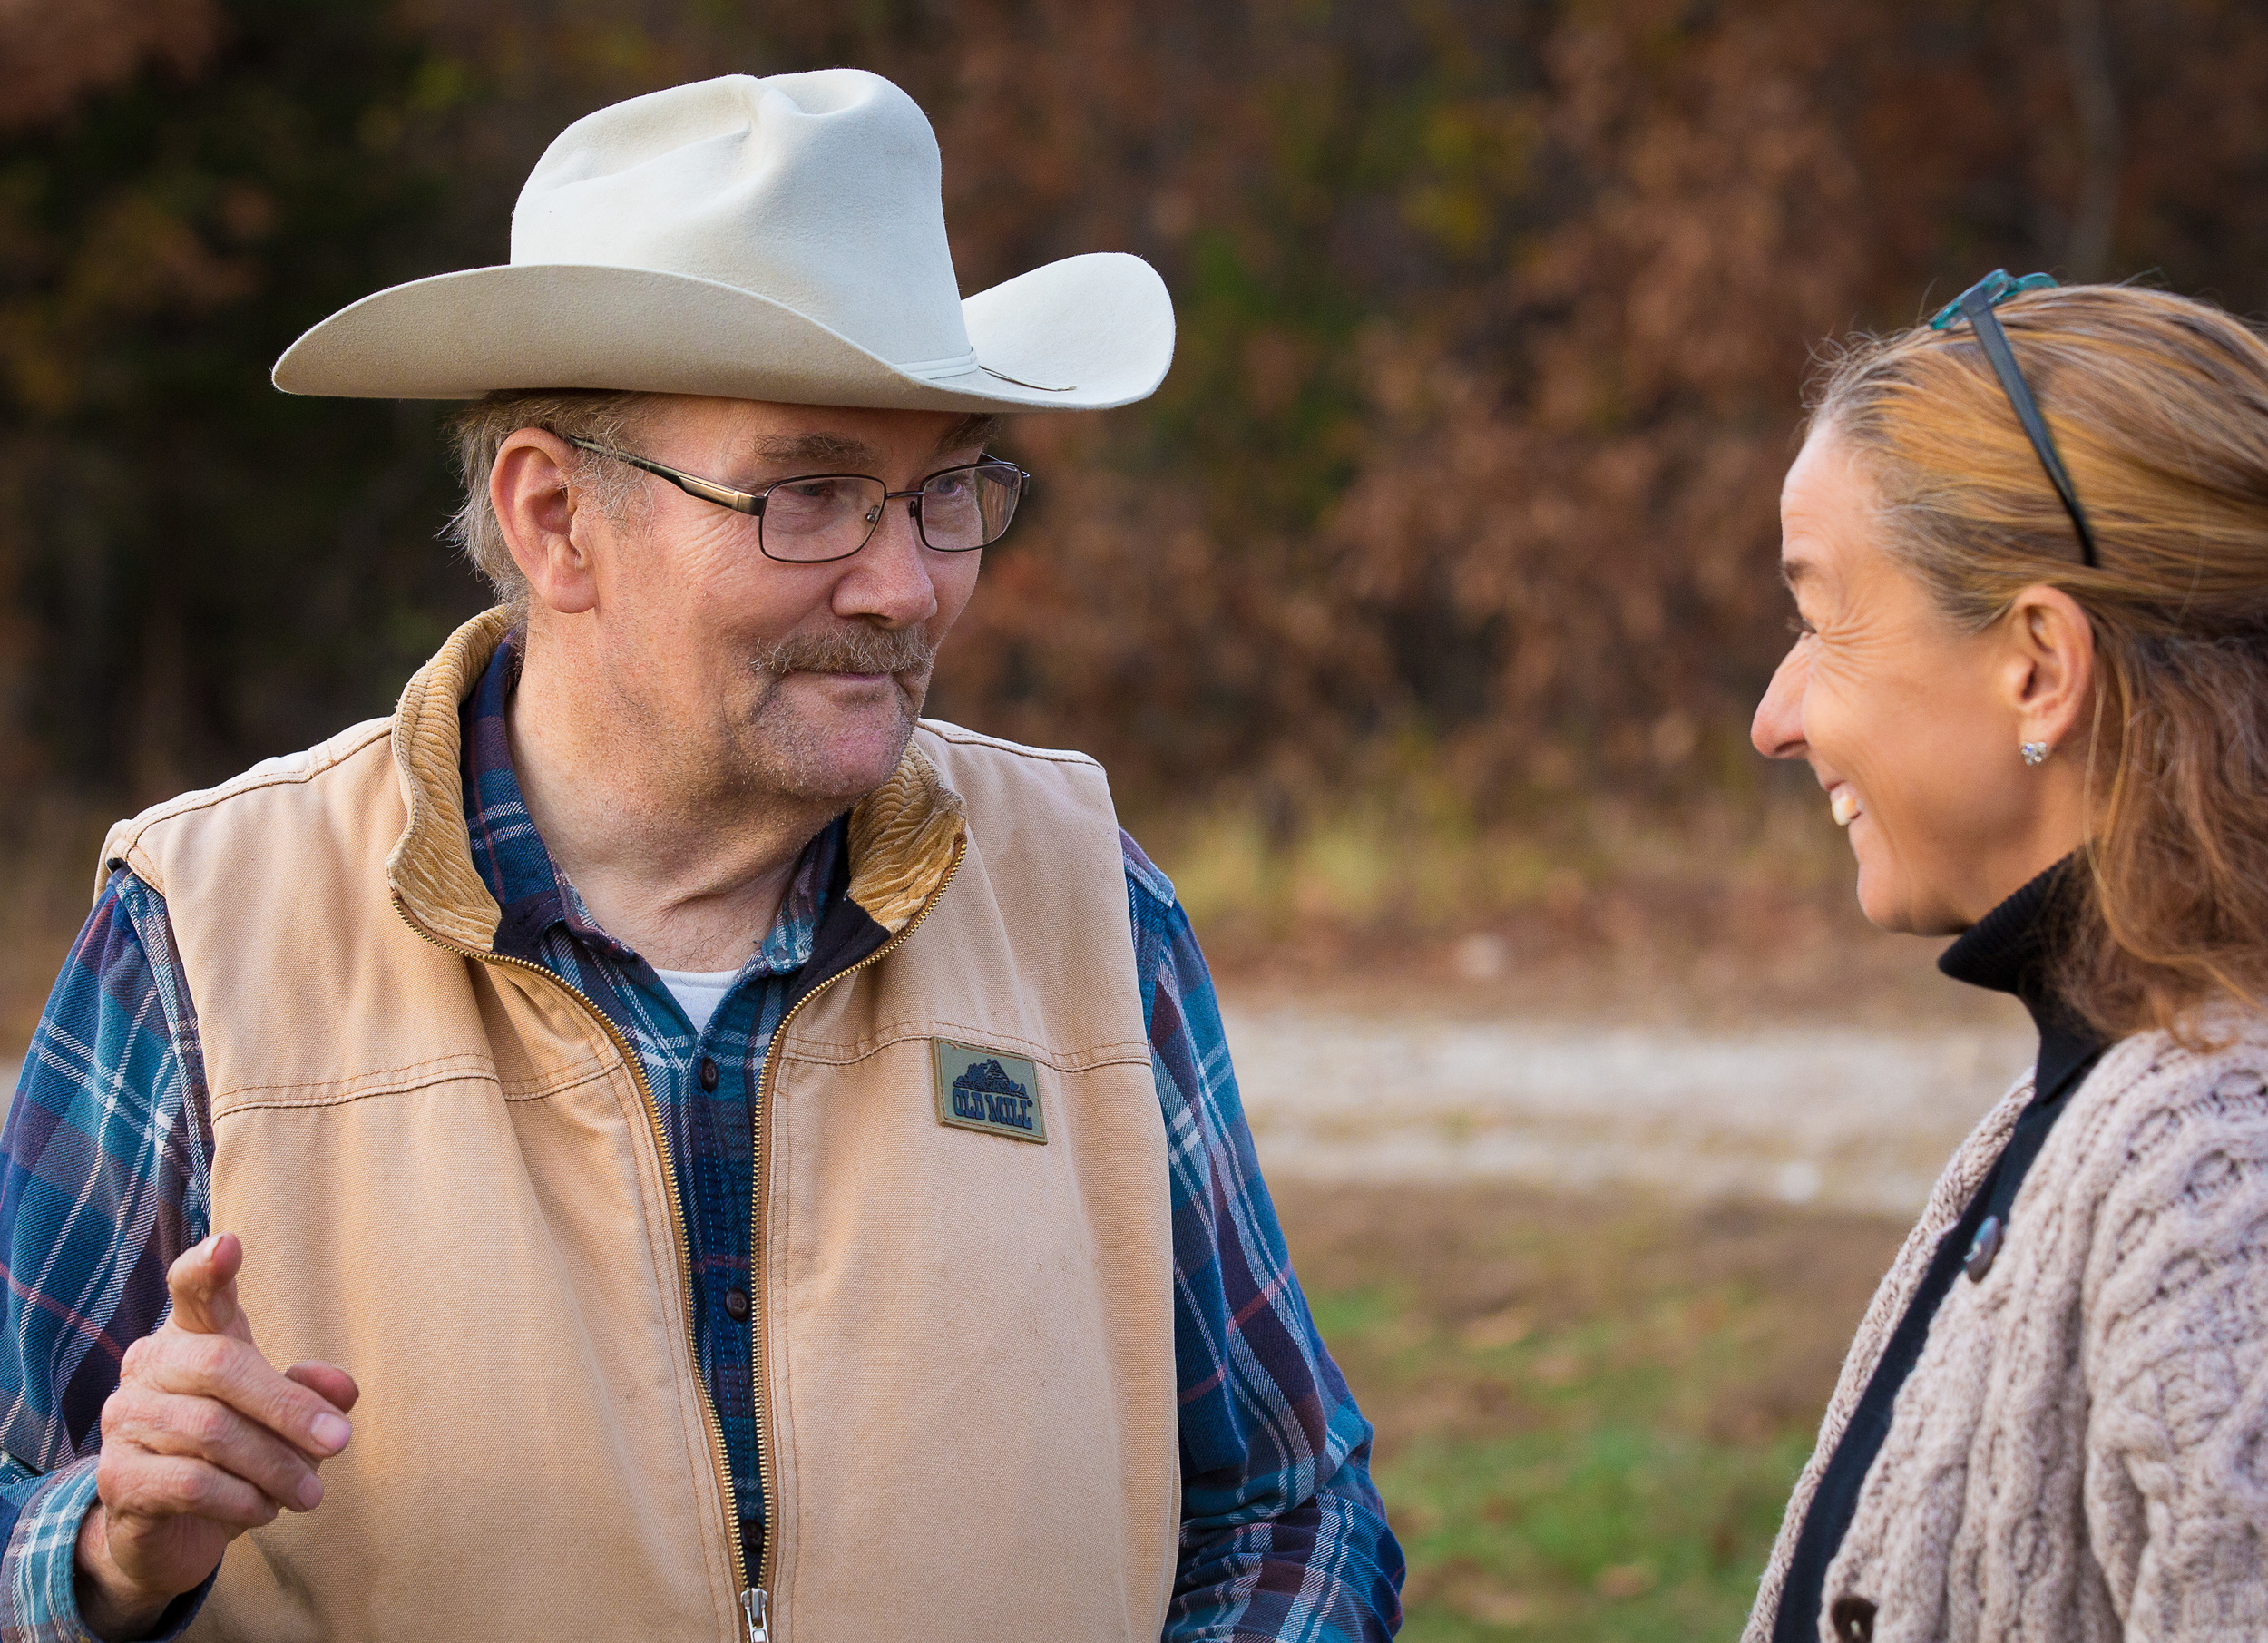 Tom Norush and Kelly in Missouri for the Horse of the Americas national meeting in 2015